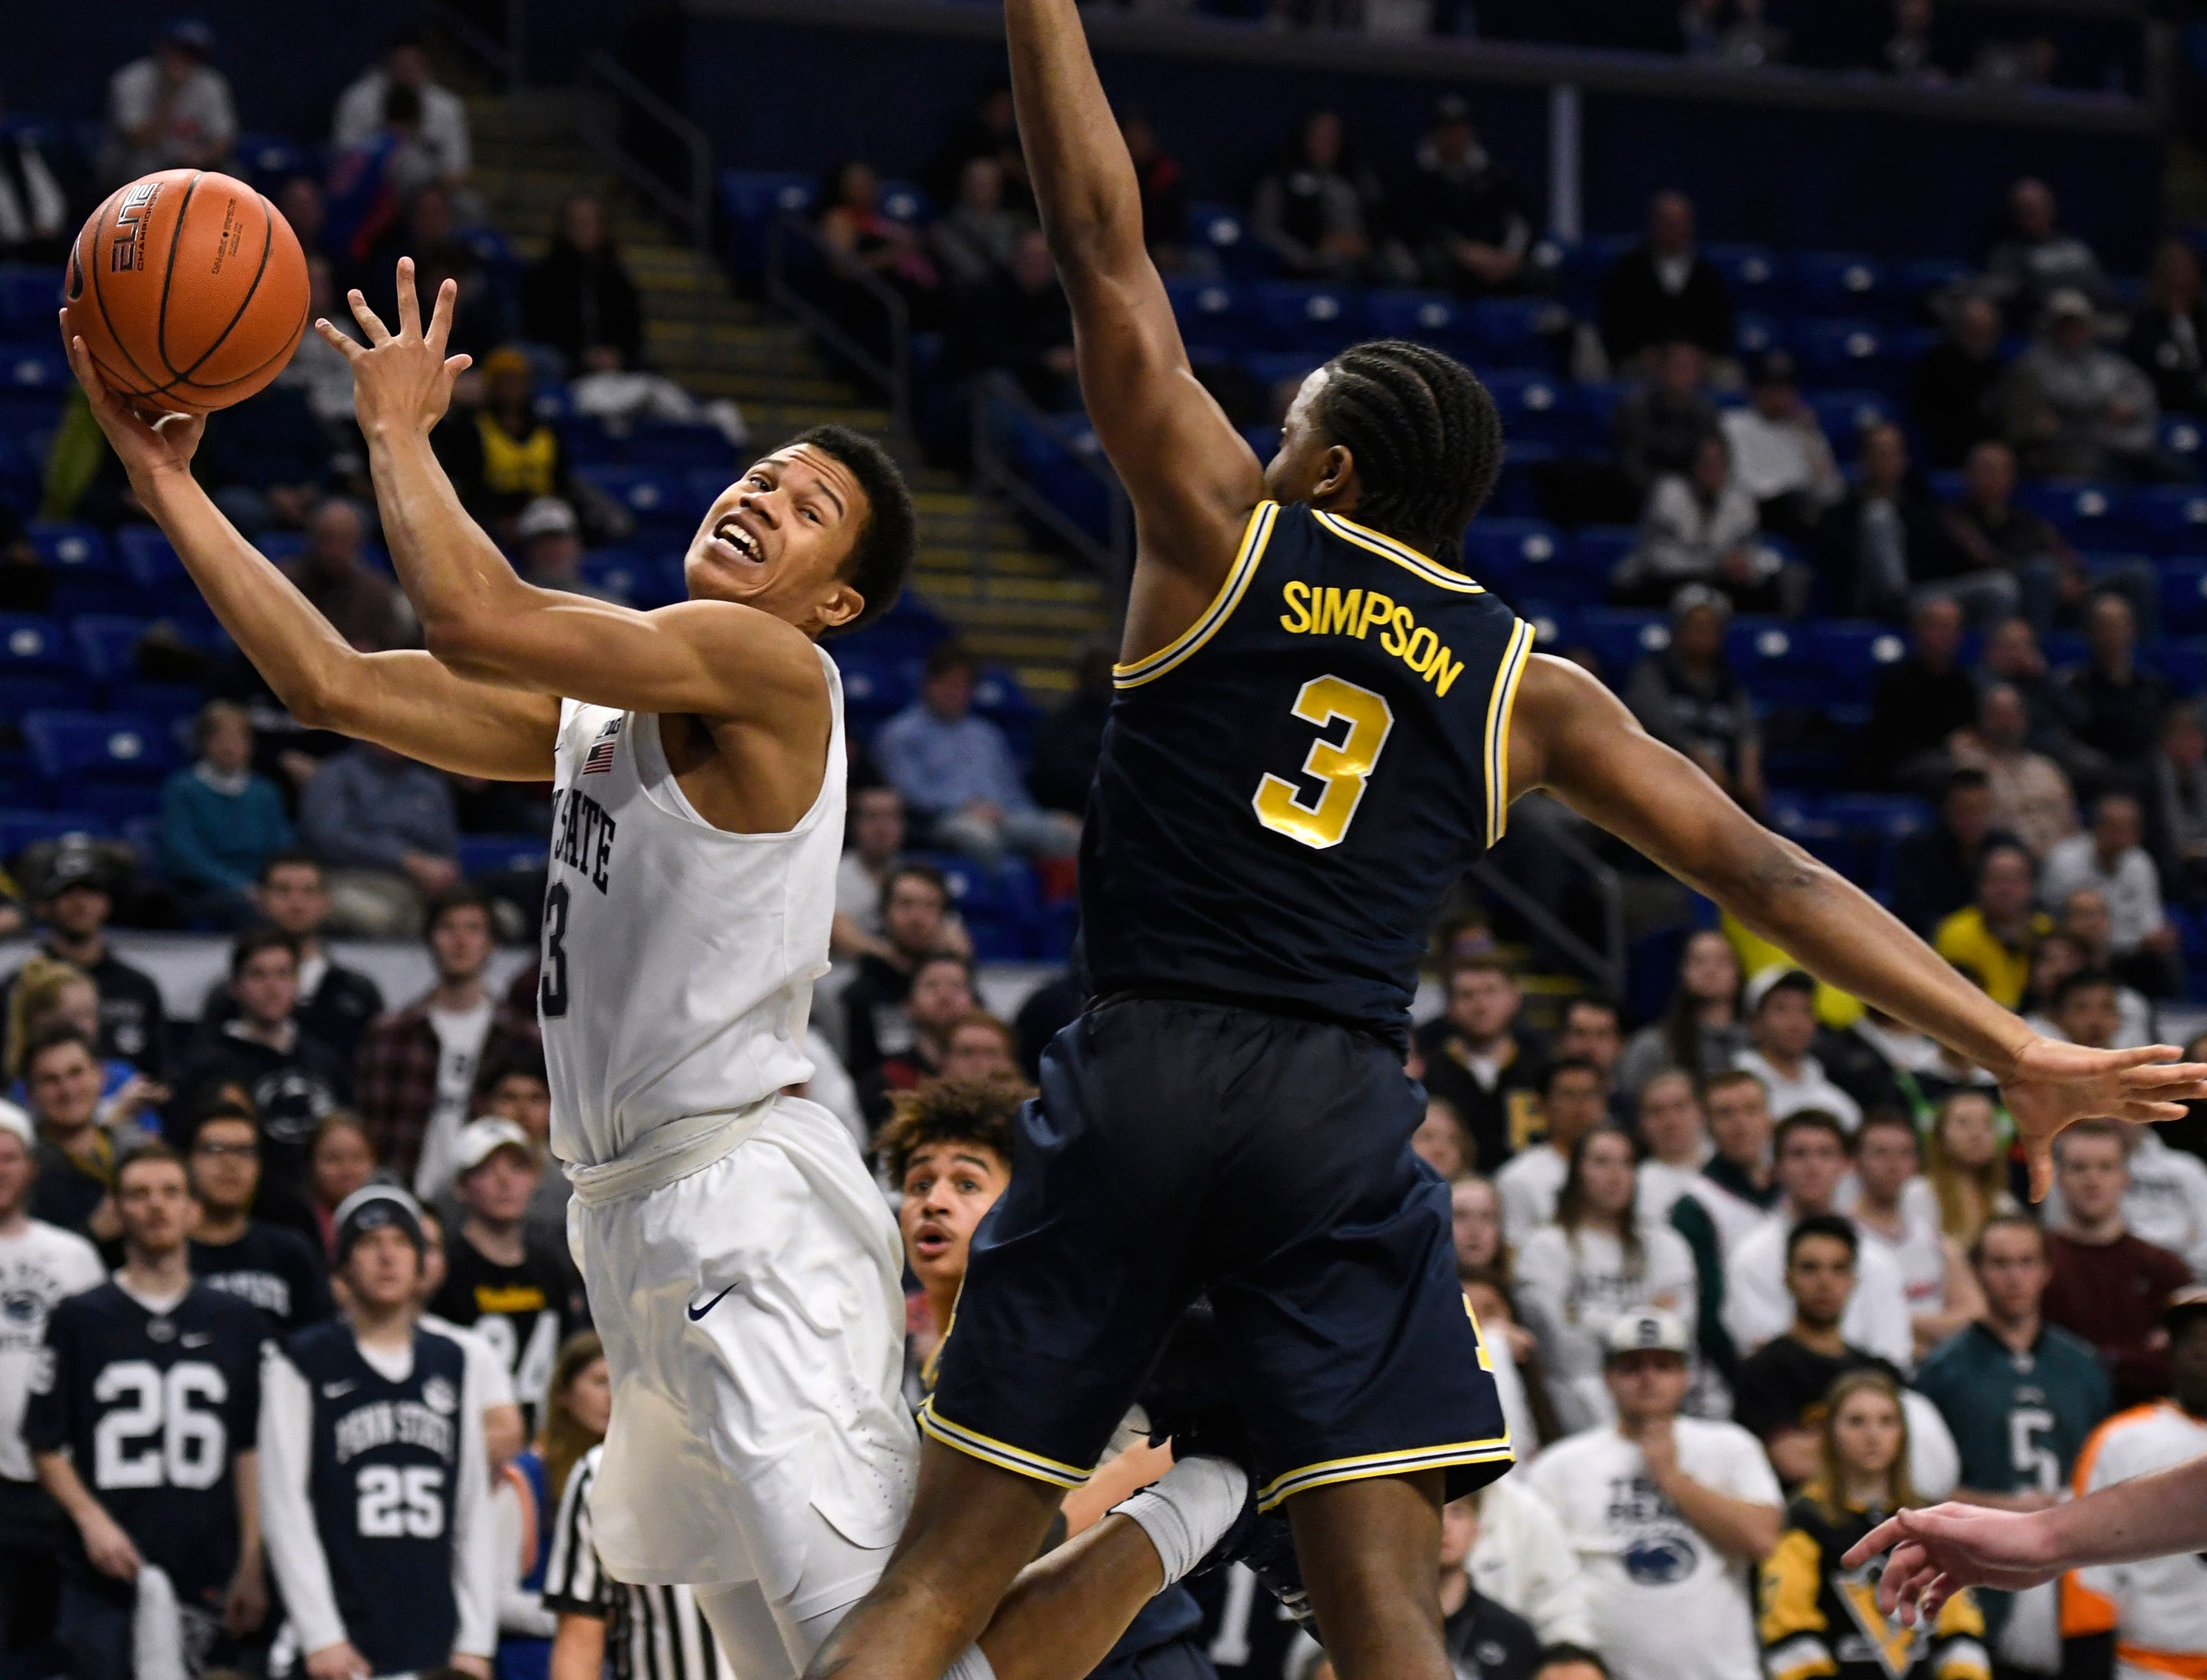 Penn State forward Satchel Pierce (3) shoots past Michigan guard Zavier Simpson (3) during the second half of an NCAA college basketball game Tuesday, Feb. 12, 2019, in State College, Pa. Penn State won 75-69. (AP Photo/John Beale)